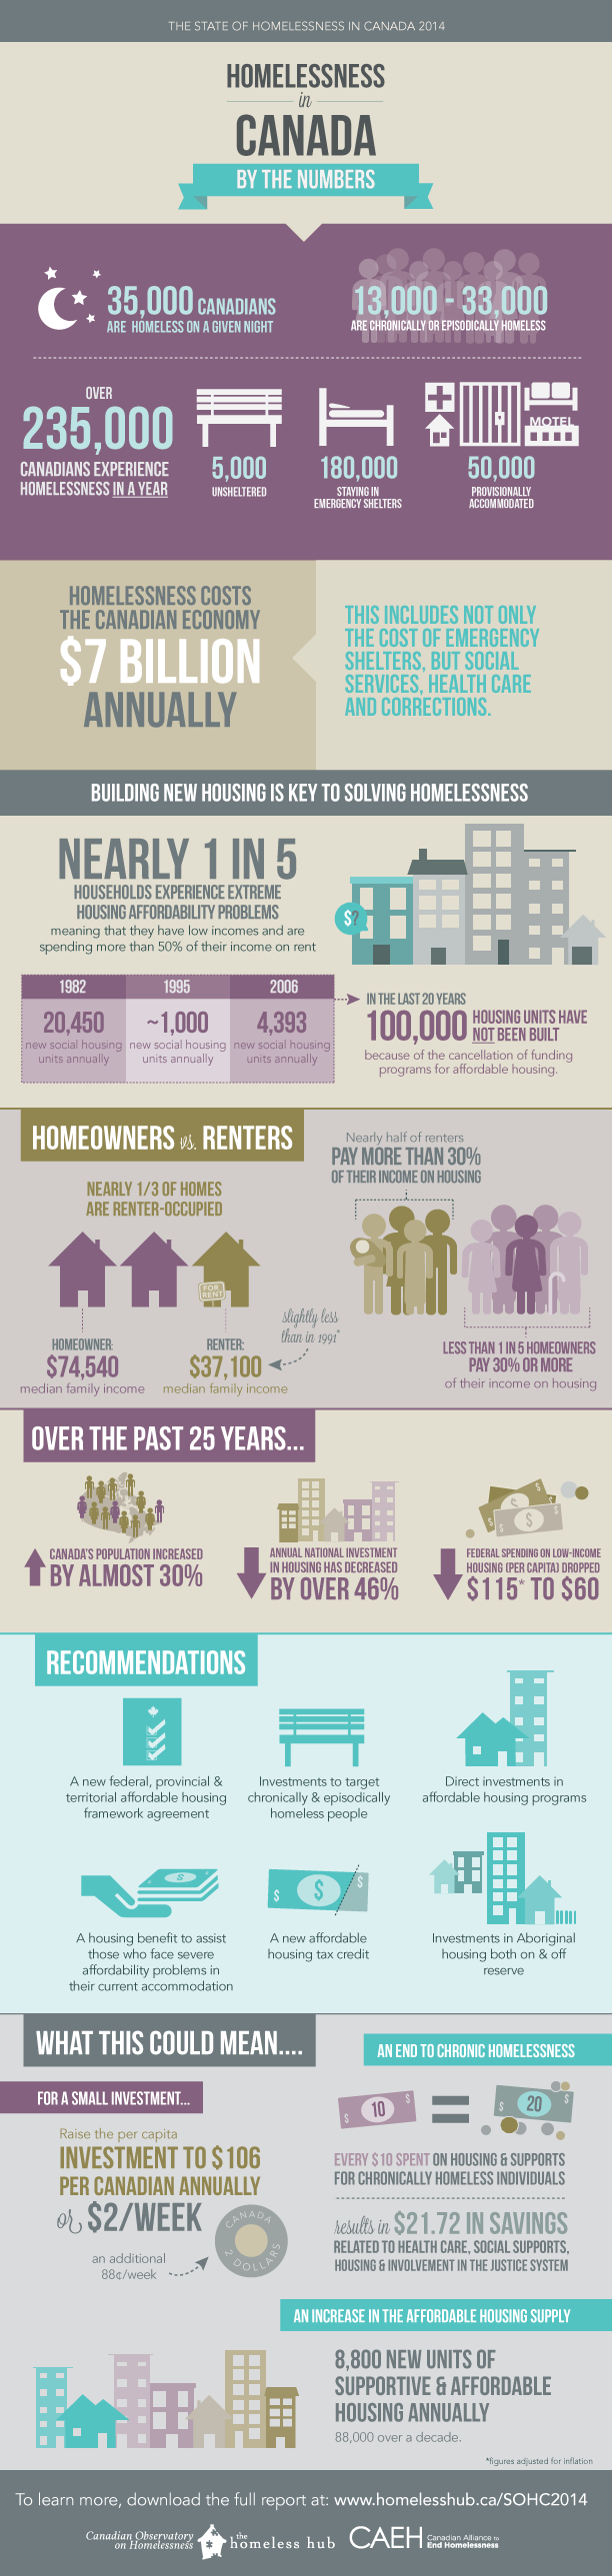 Homelessness in Canada by the Numbers Infographic